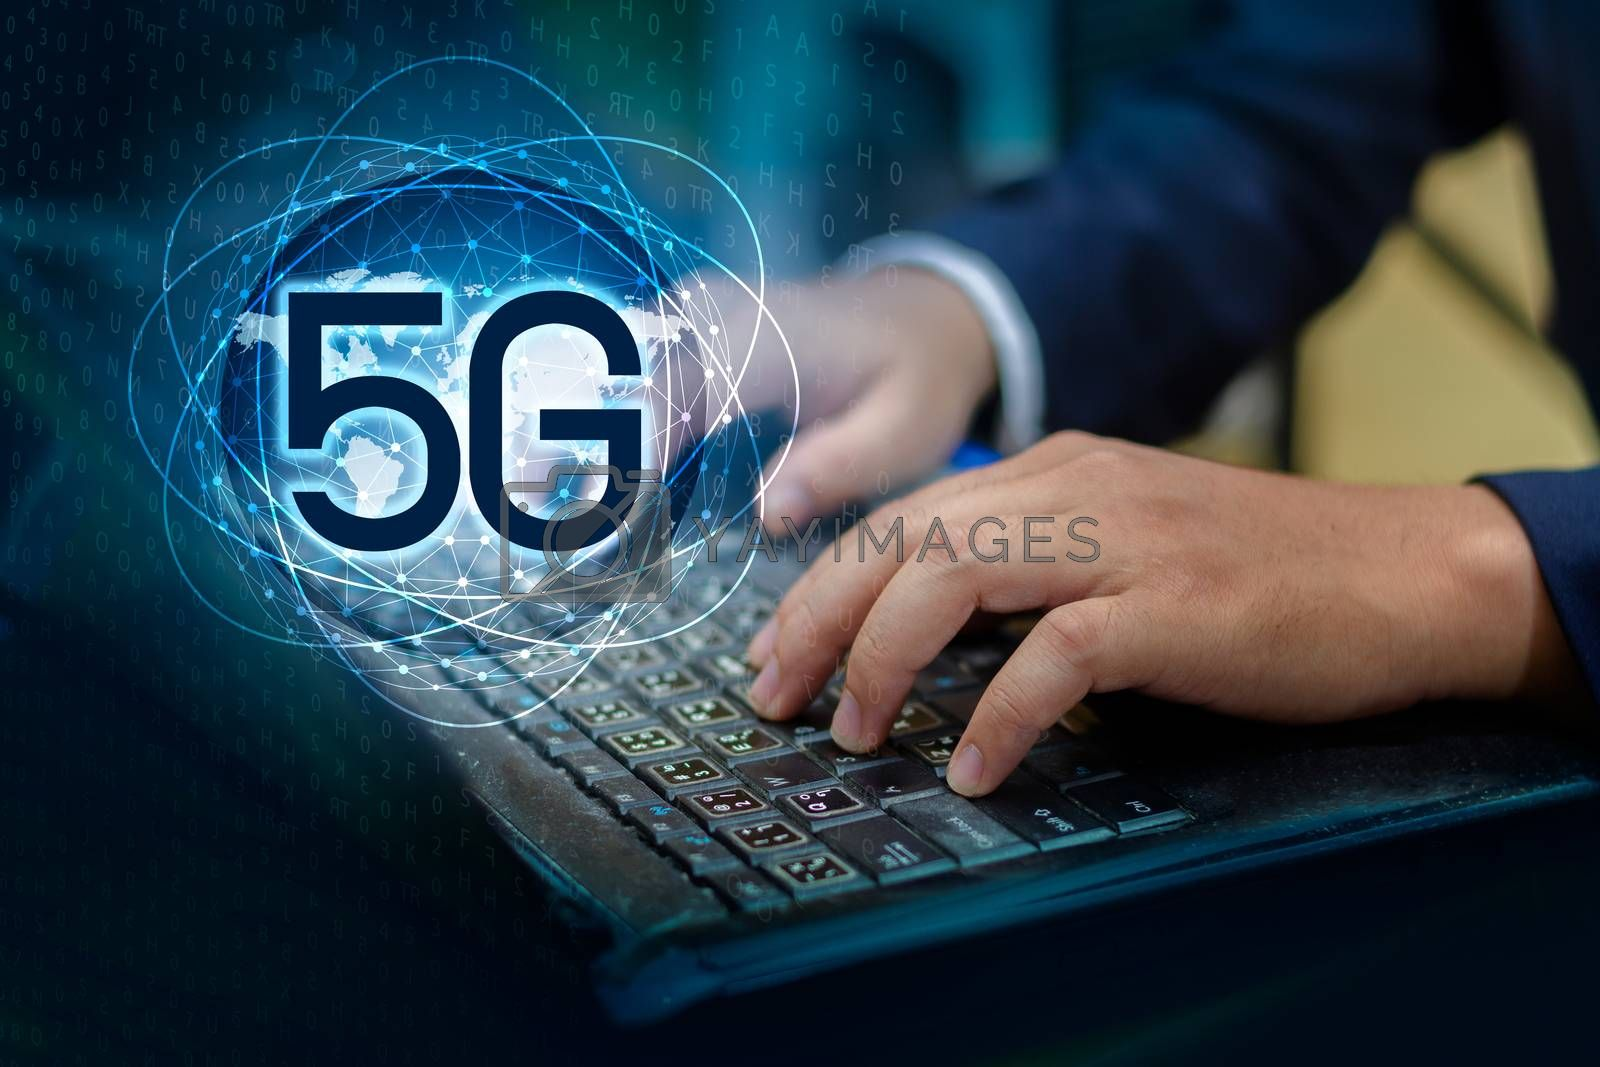 phone computer 5g Earth businessman connect worldwide waiter hand holding an empty digital tablet with smart and 5G network connection concept by Sarayut